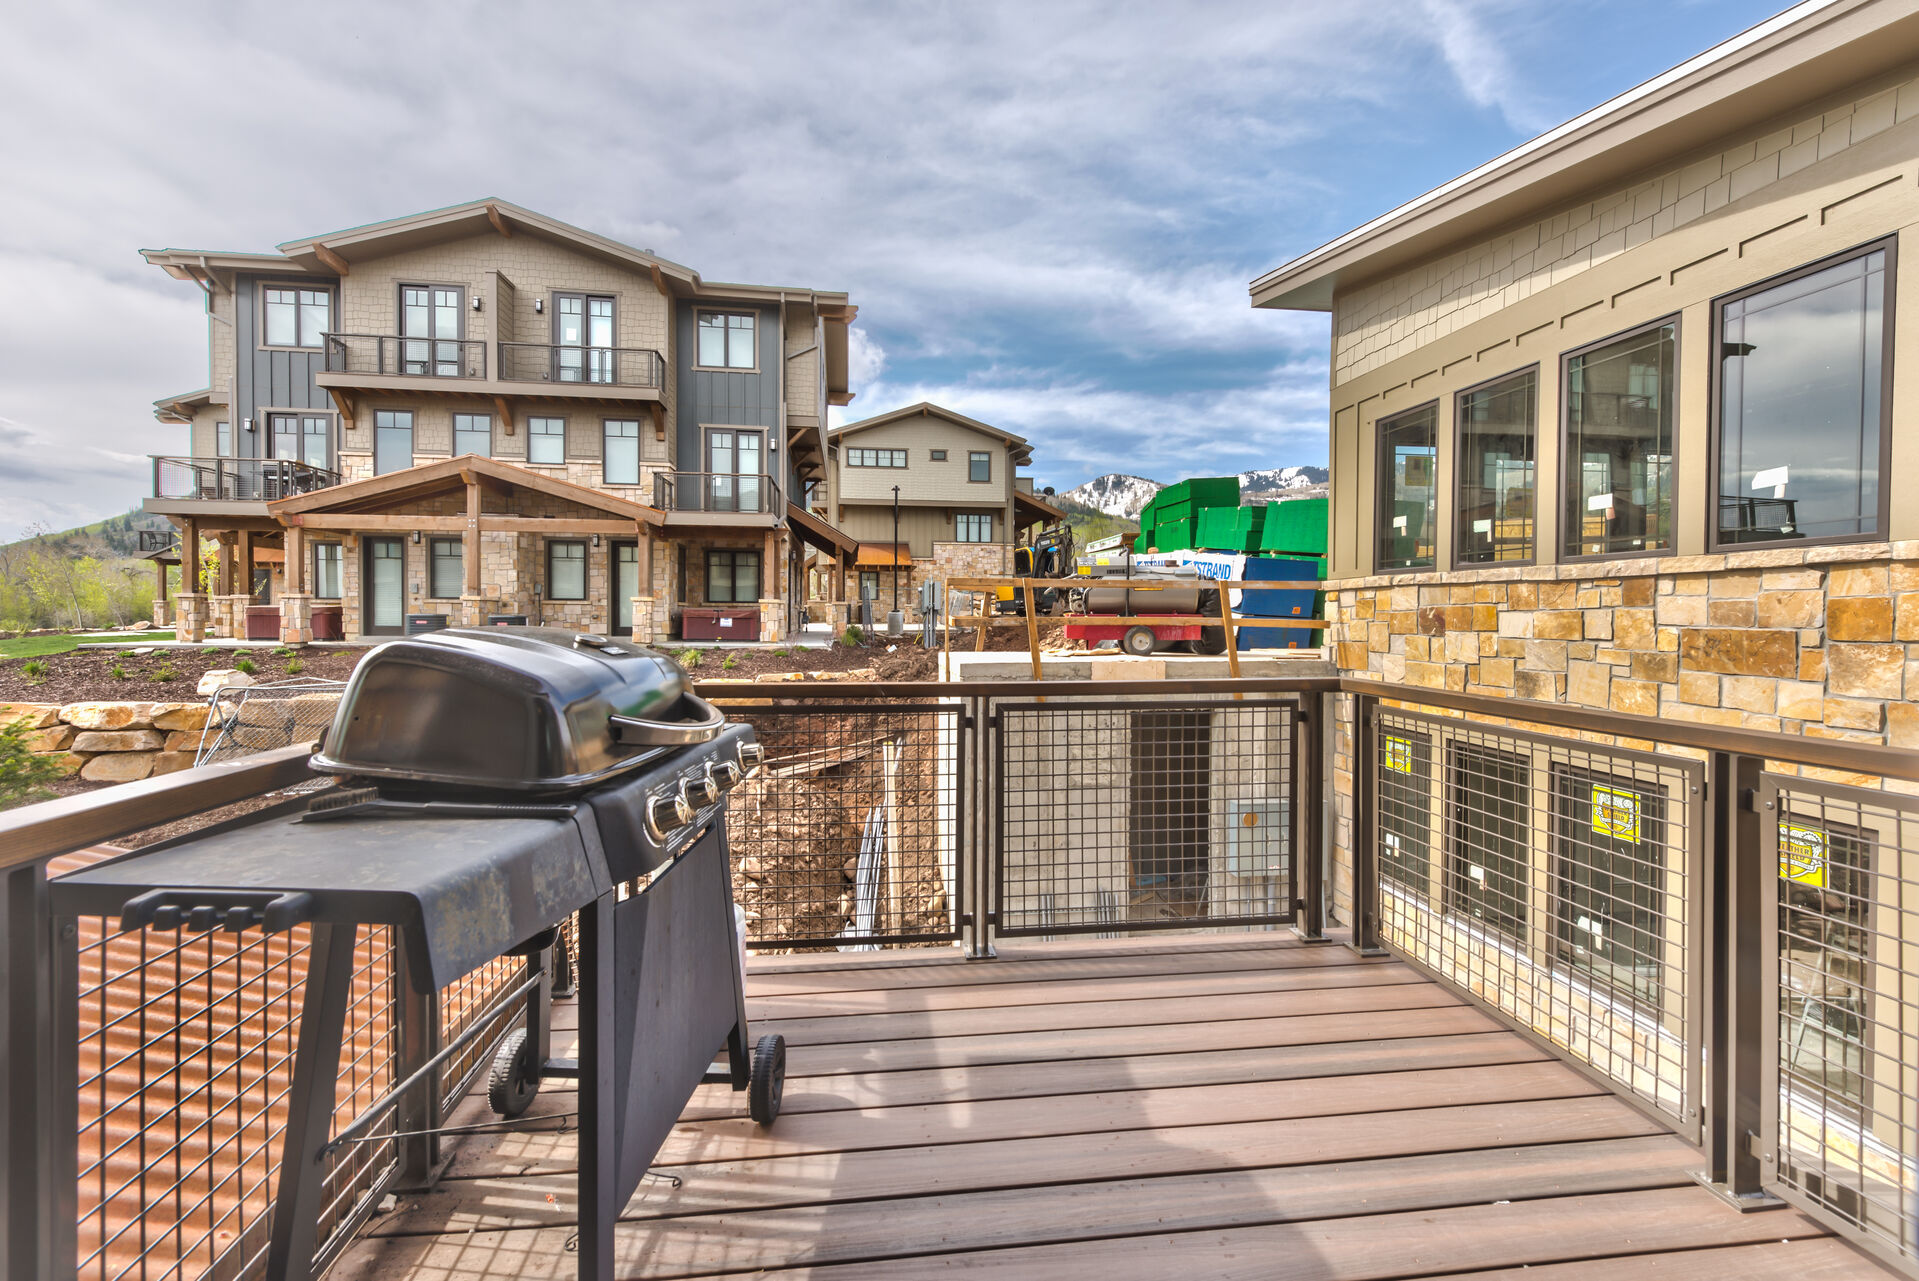 Deck off of Living area with BBQ Grill